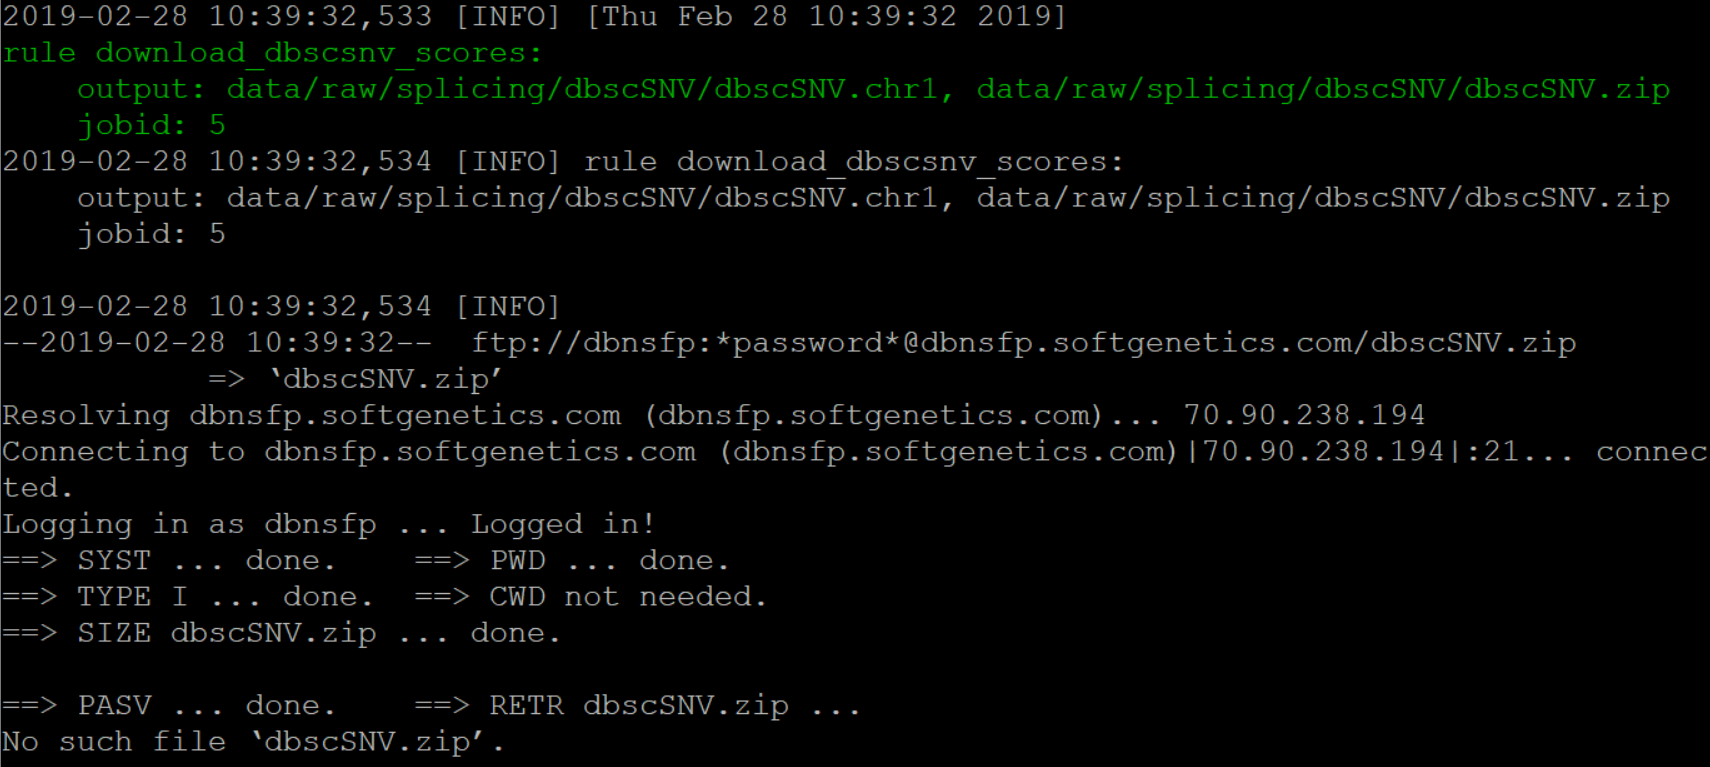 Has the link expired? I did not find the `dbscSNV zip `data file